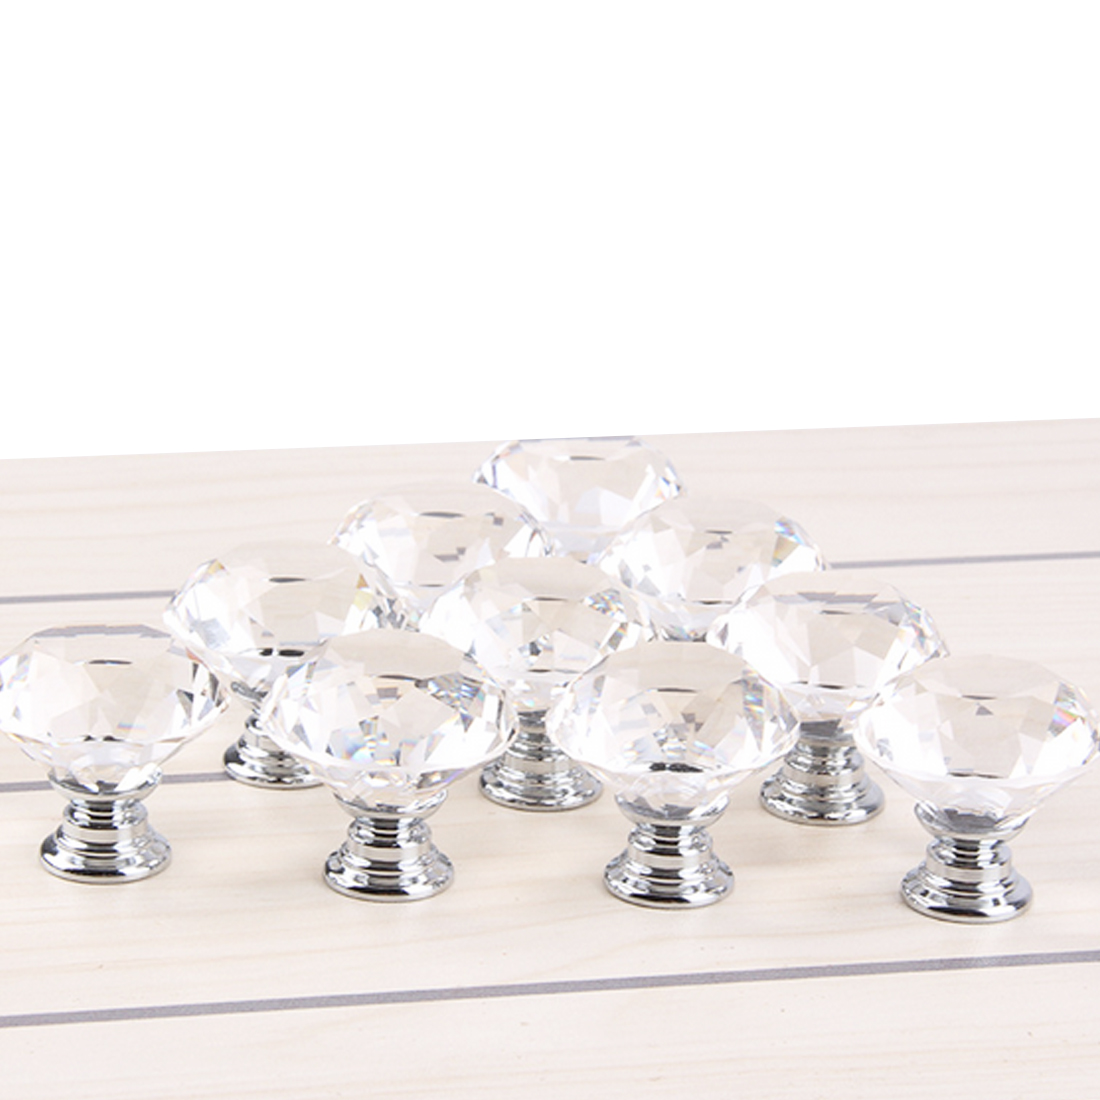 New 10 Pcs 30mm Diamond Shape Crystal Glass Door Handle Knob for furniture Drawer Cabinet Kitchen Pull Handles Knobs Wardrobe 10 pcs 30mm diamond shape crystal glass drawer cabinet knobs and pull handles kitchen door wardrobe hardware accessories